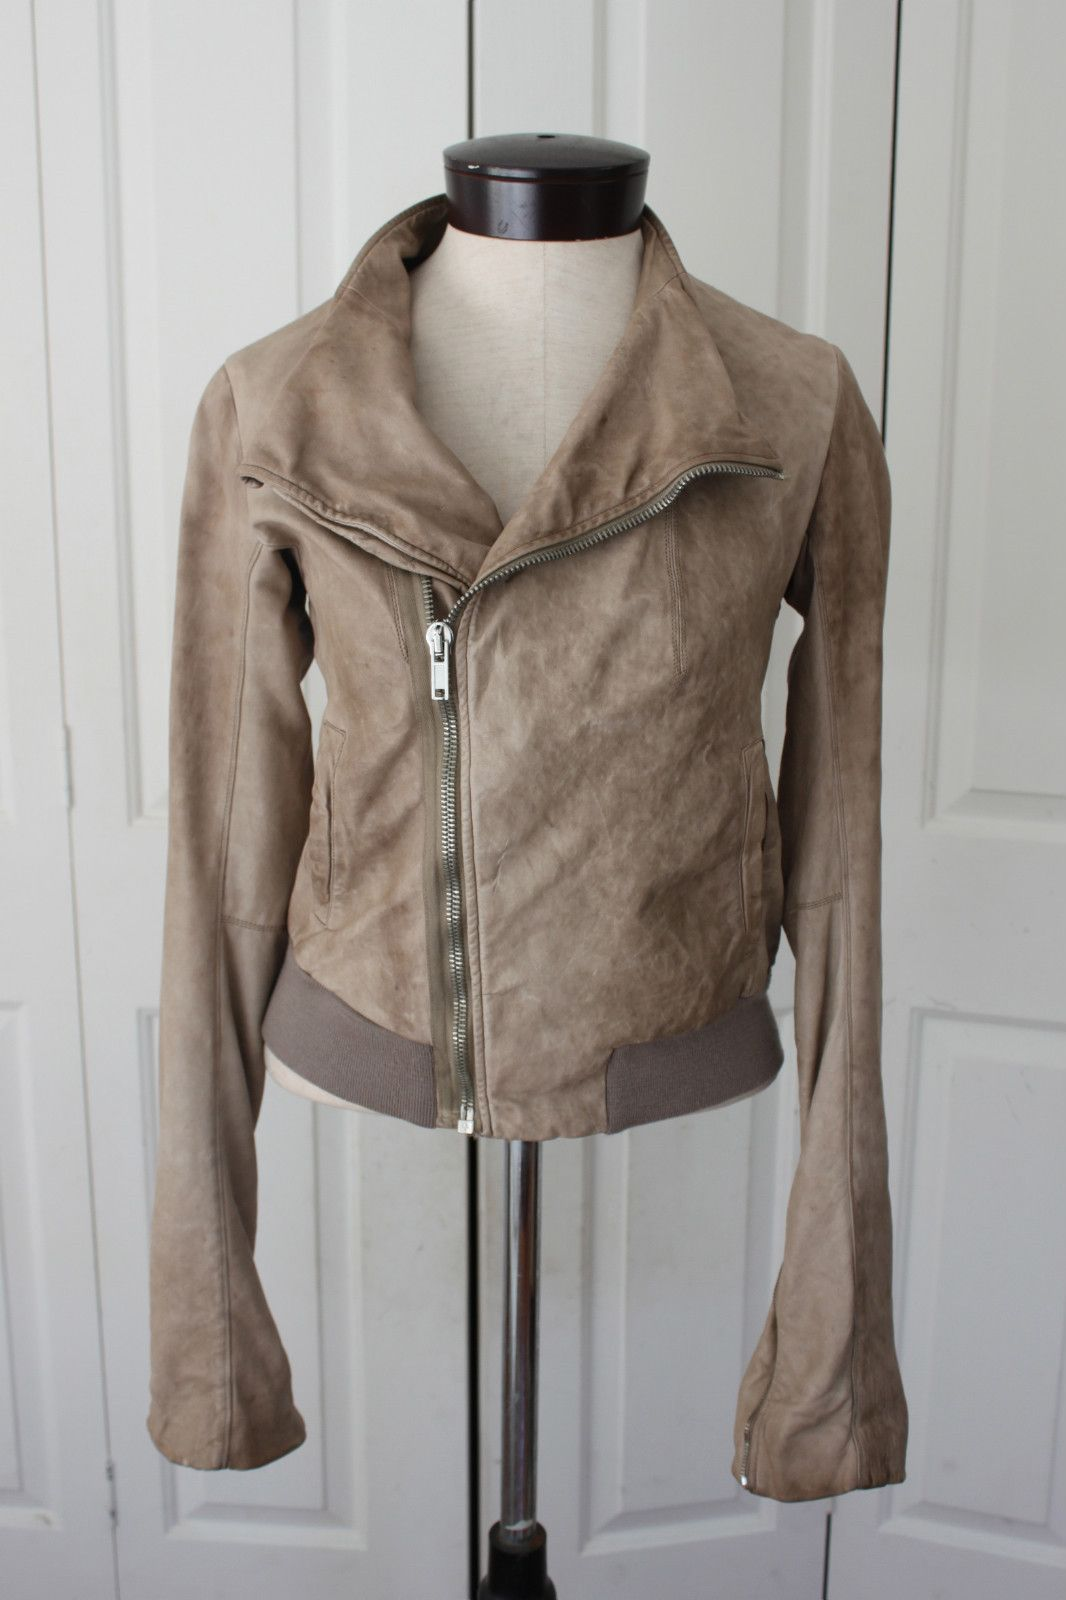 My Rick Owens light brown leather jacket